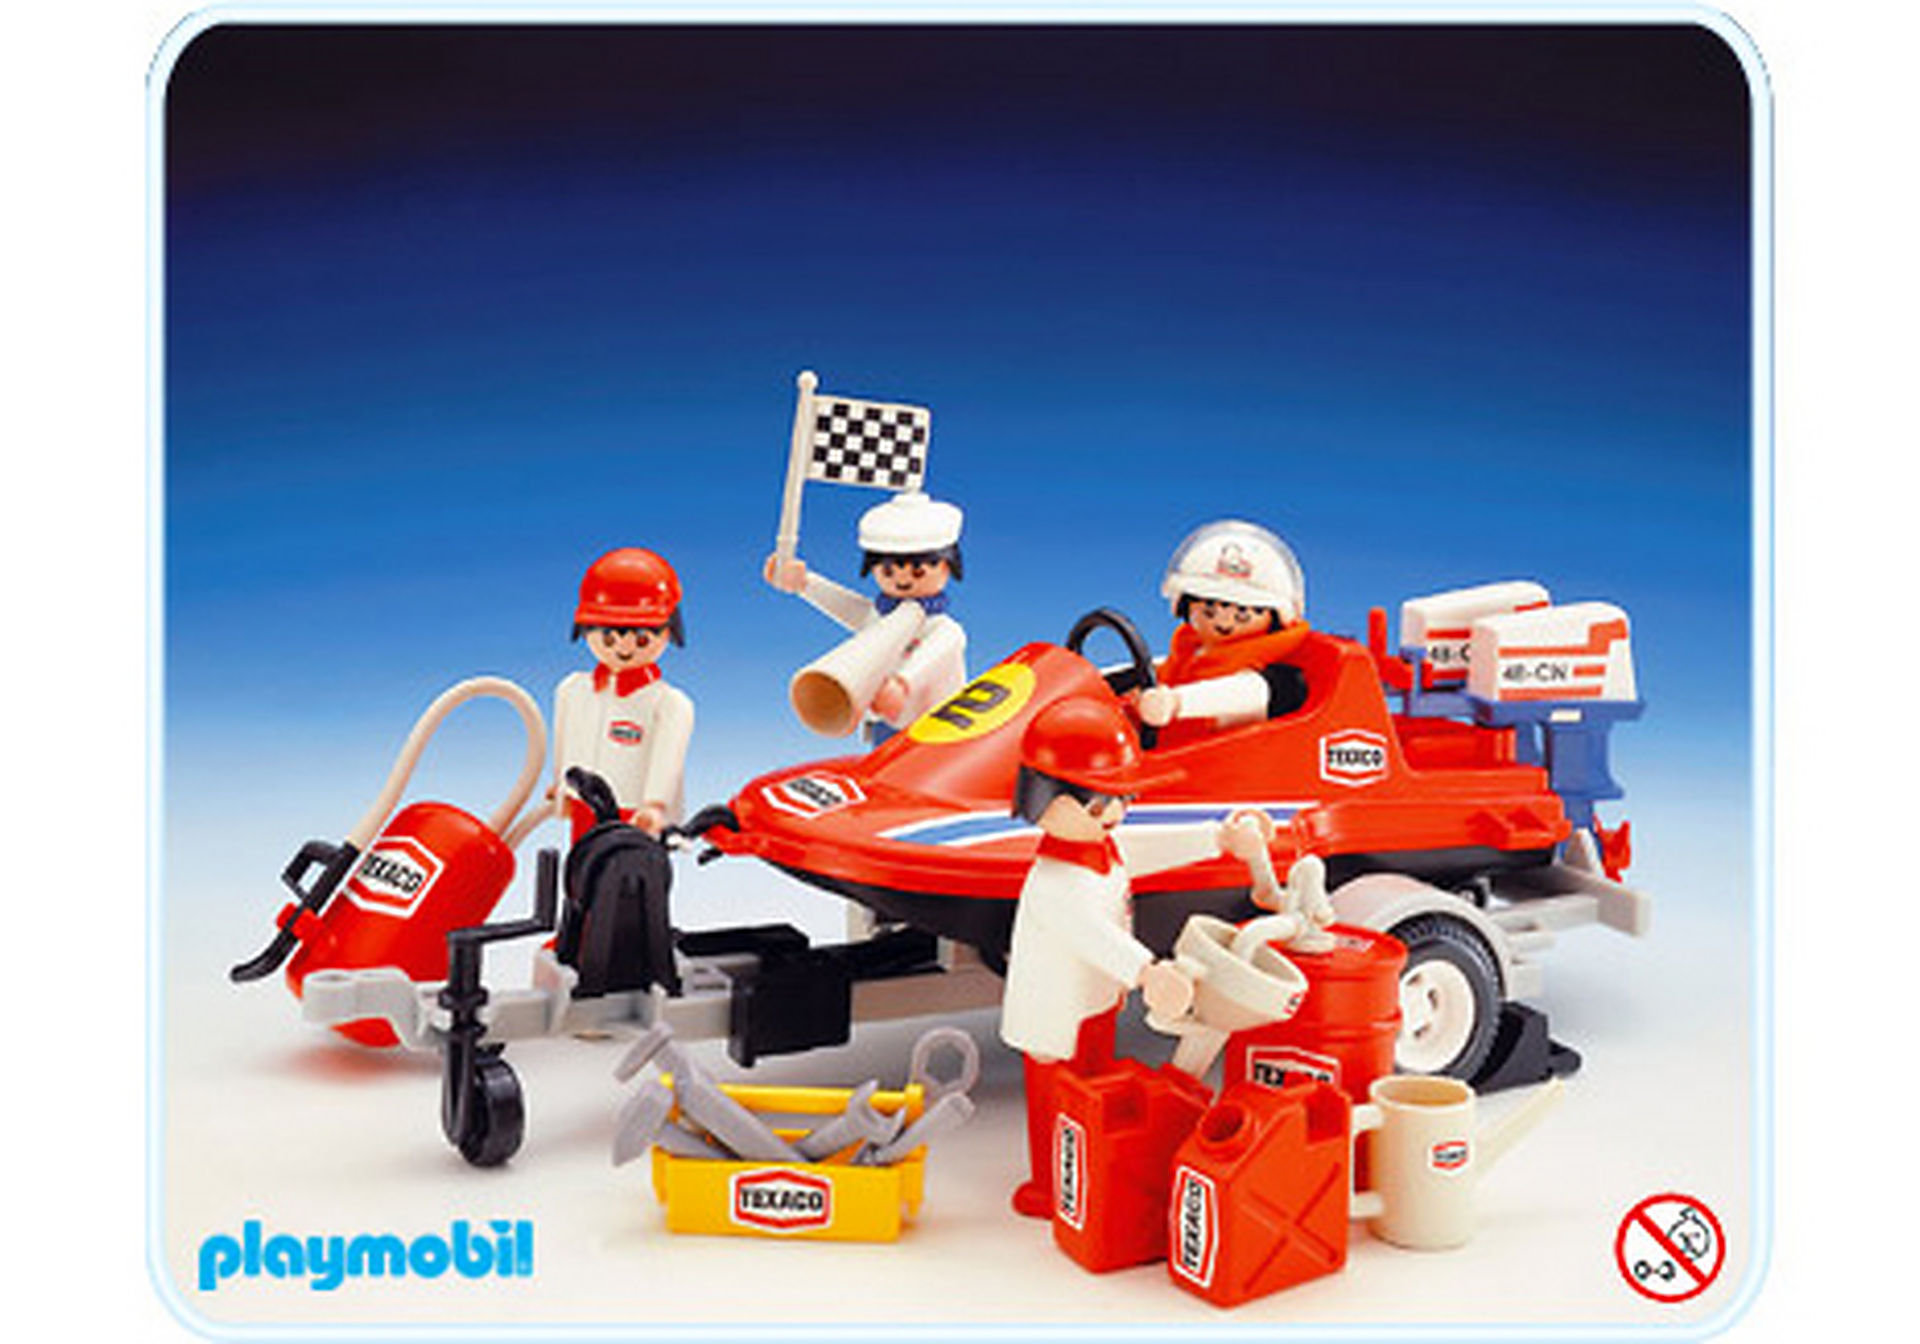 http://media.playmobil.com/i/playmobil/3538-B_product_detail/Rennboot/Trailer